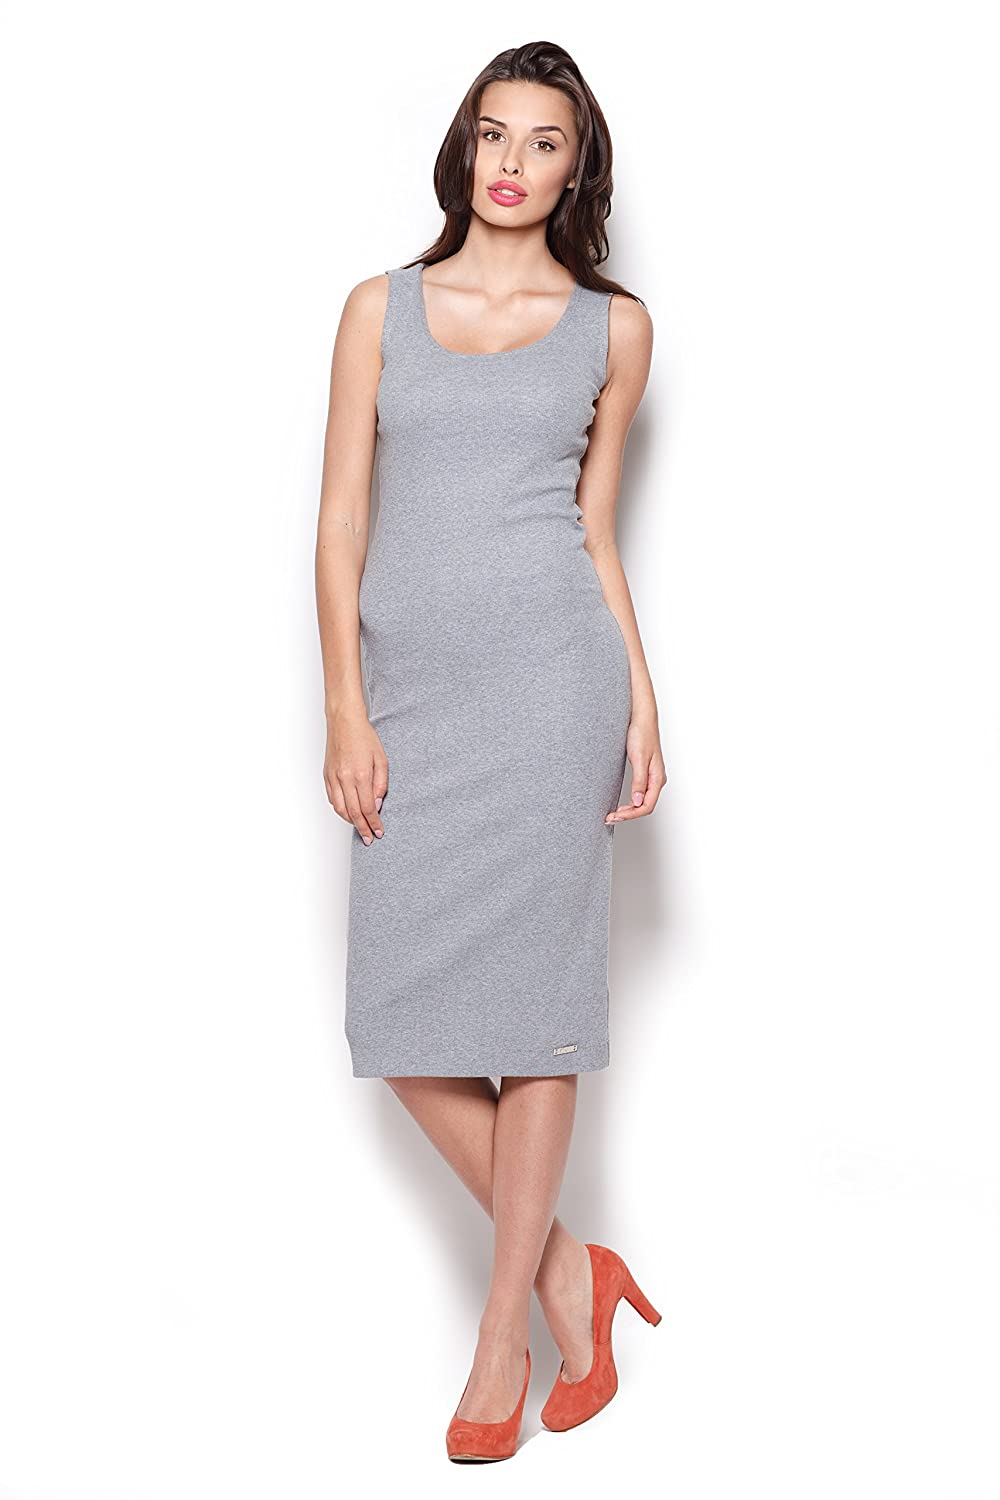 Figl Damen Etui Dress